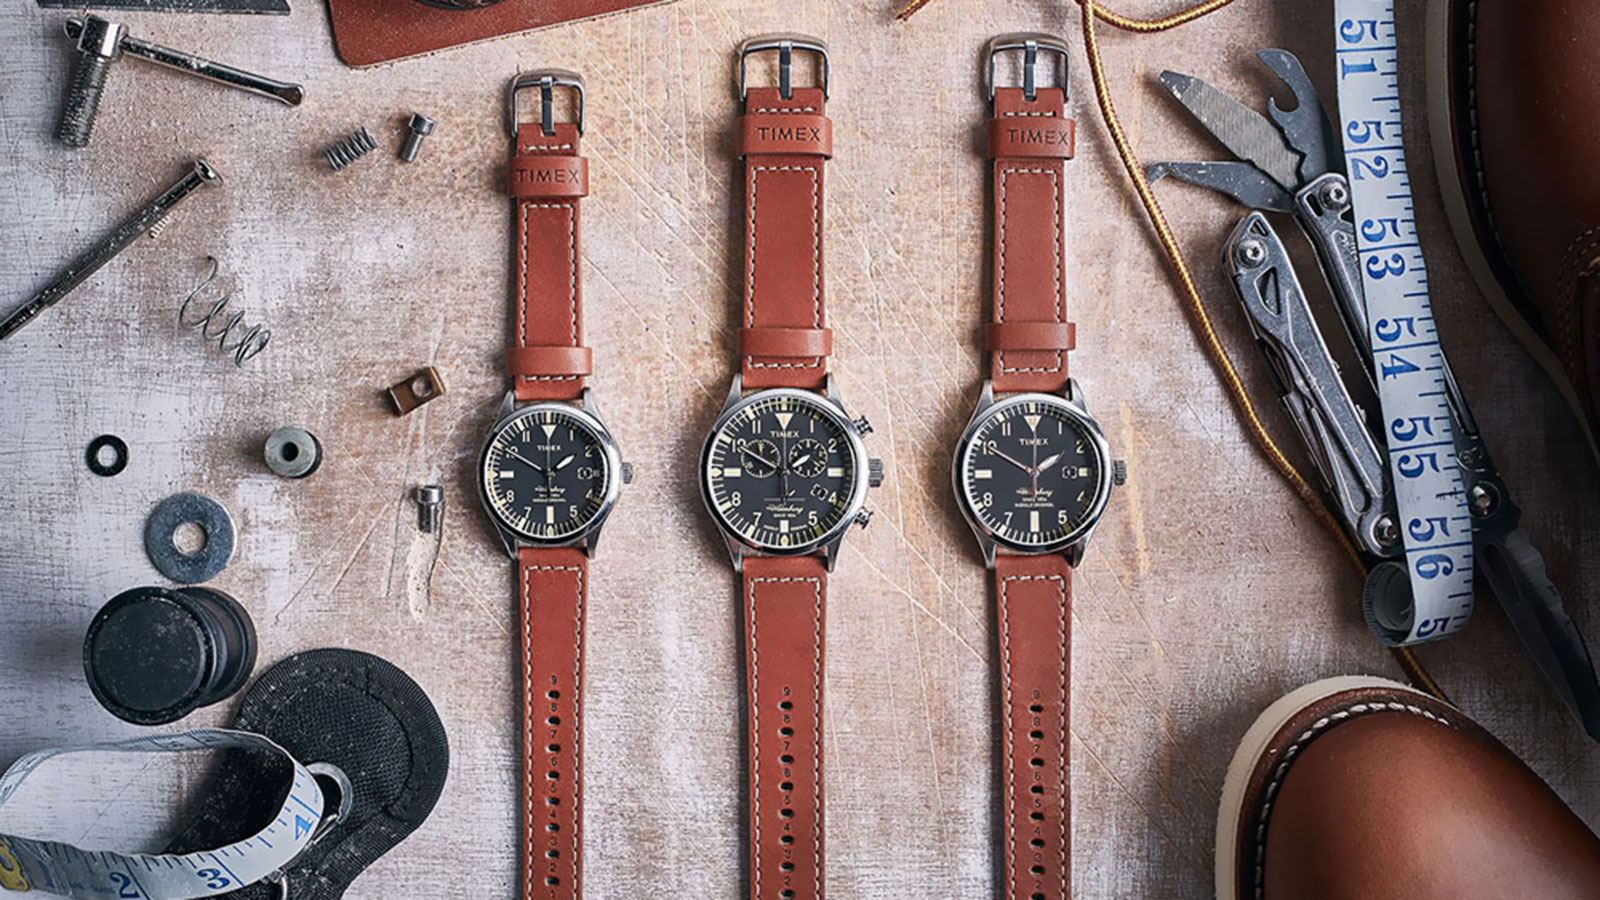 TIMEX X RED WING WATERBURY WATCH COLLECTION